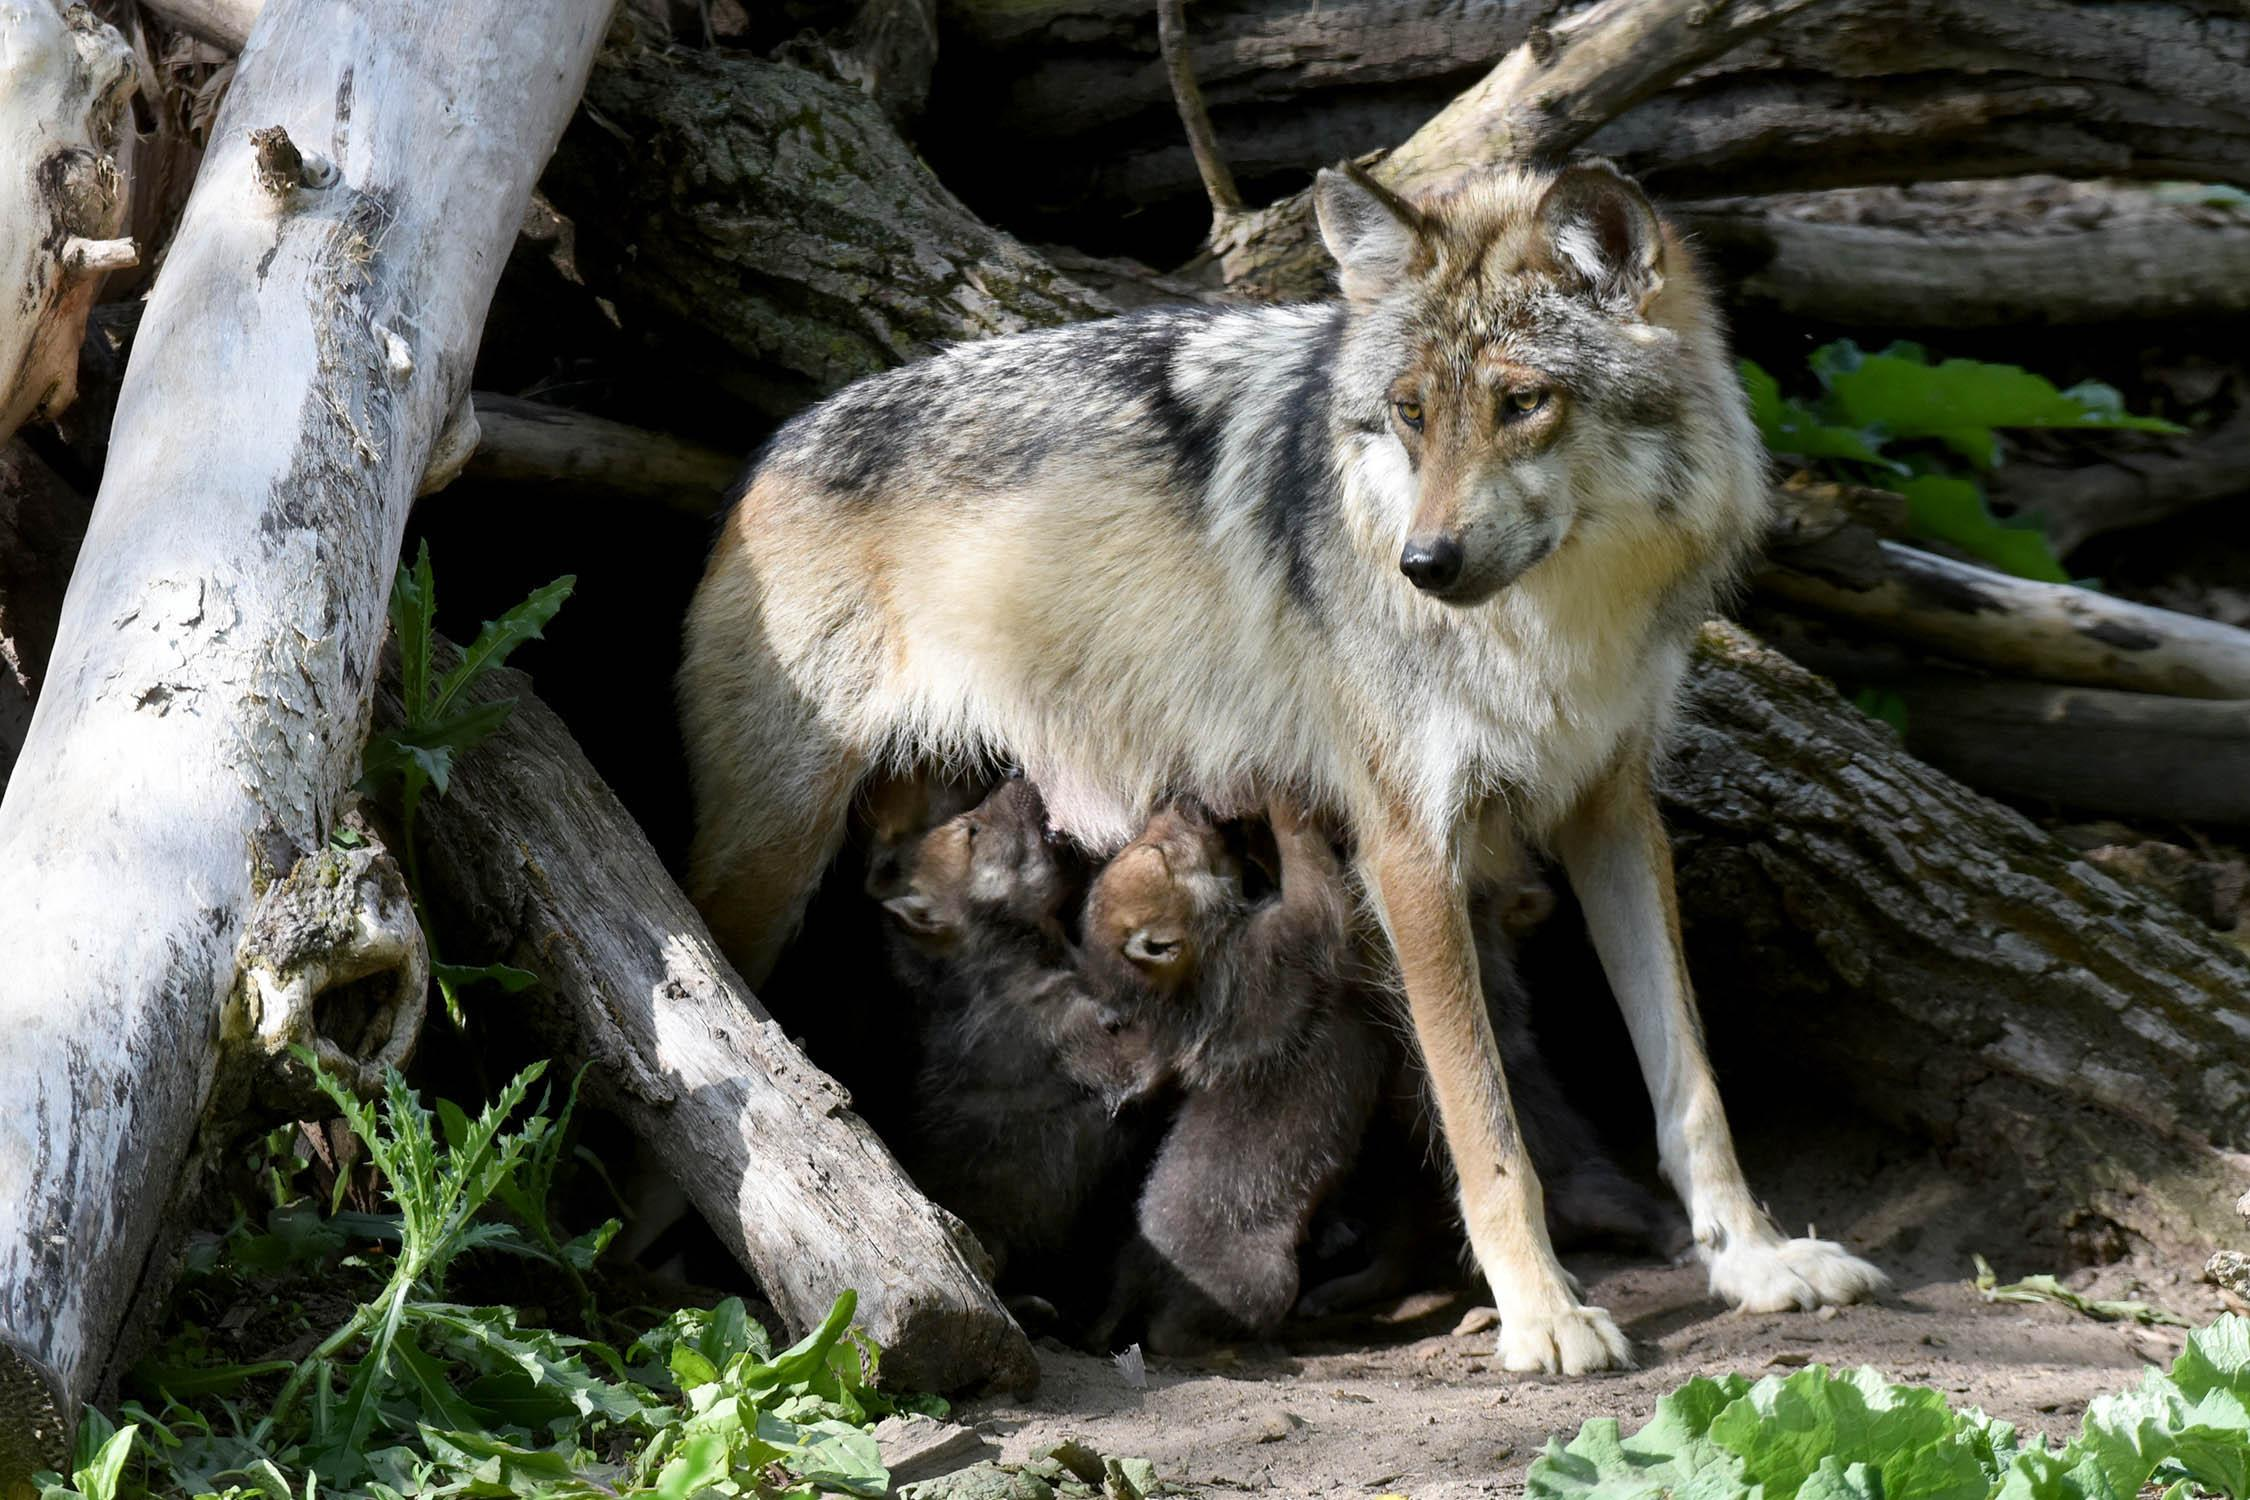 Mexican gray wolf Zana gave birth to five pups in April. Two of the pups were transferred from the zoo and placed in the den of the San Mateo wolf pack in New Mexico. (Courtesy Chicago Zoological Society)